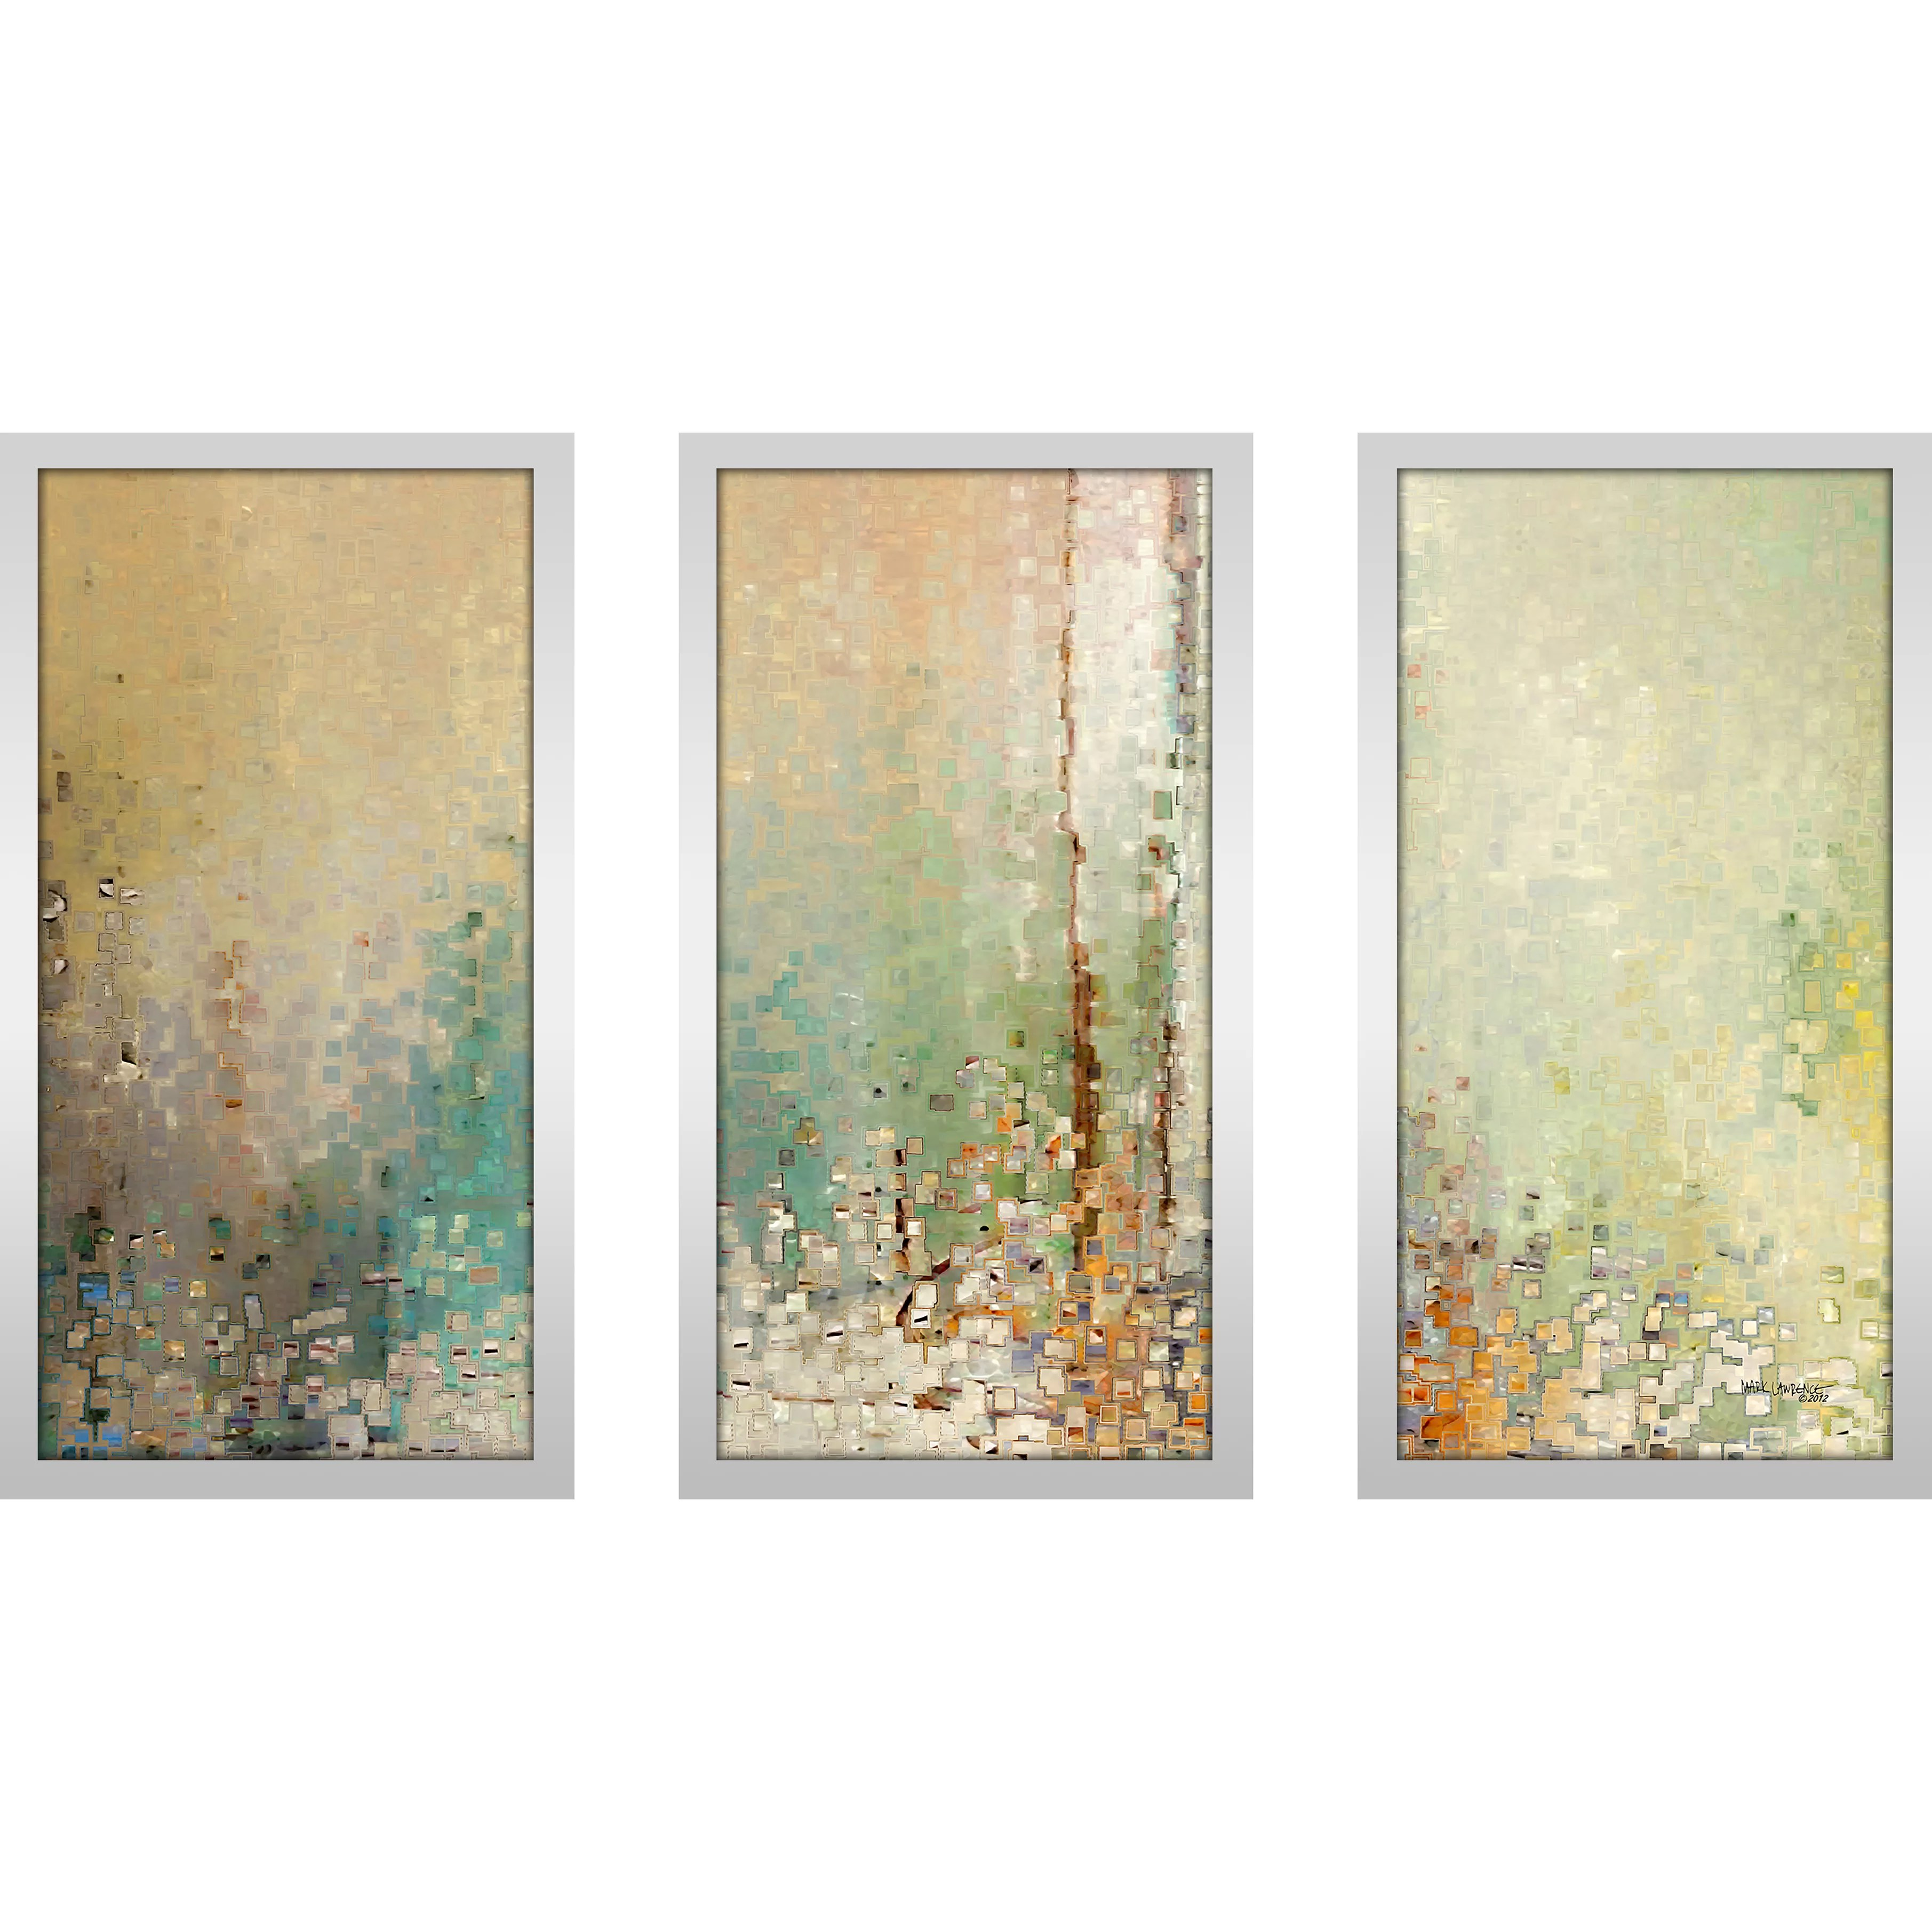 Framed Wall Art Sets Of 3 Pictureperfectinternational Quotjohn 12 32 Max Quot By Mark